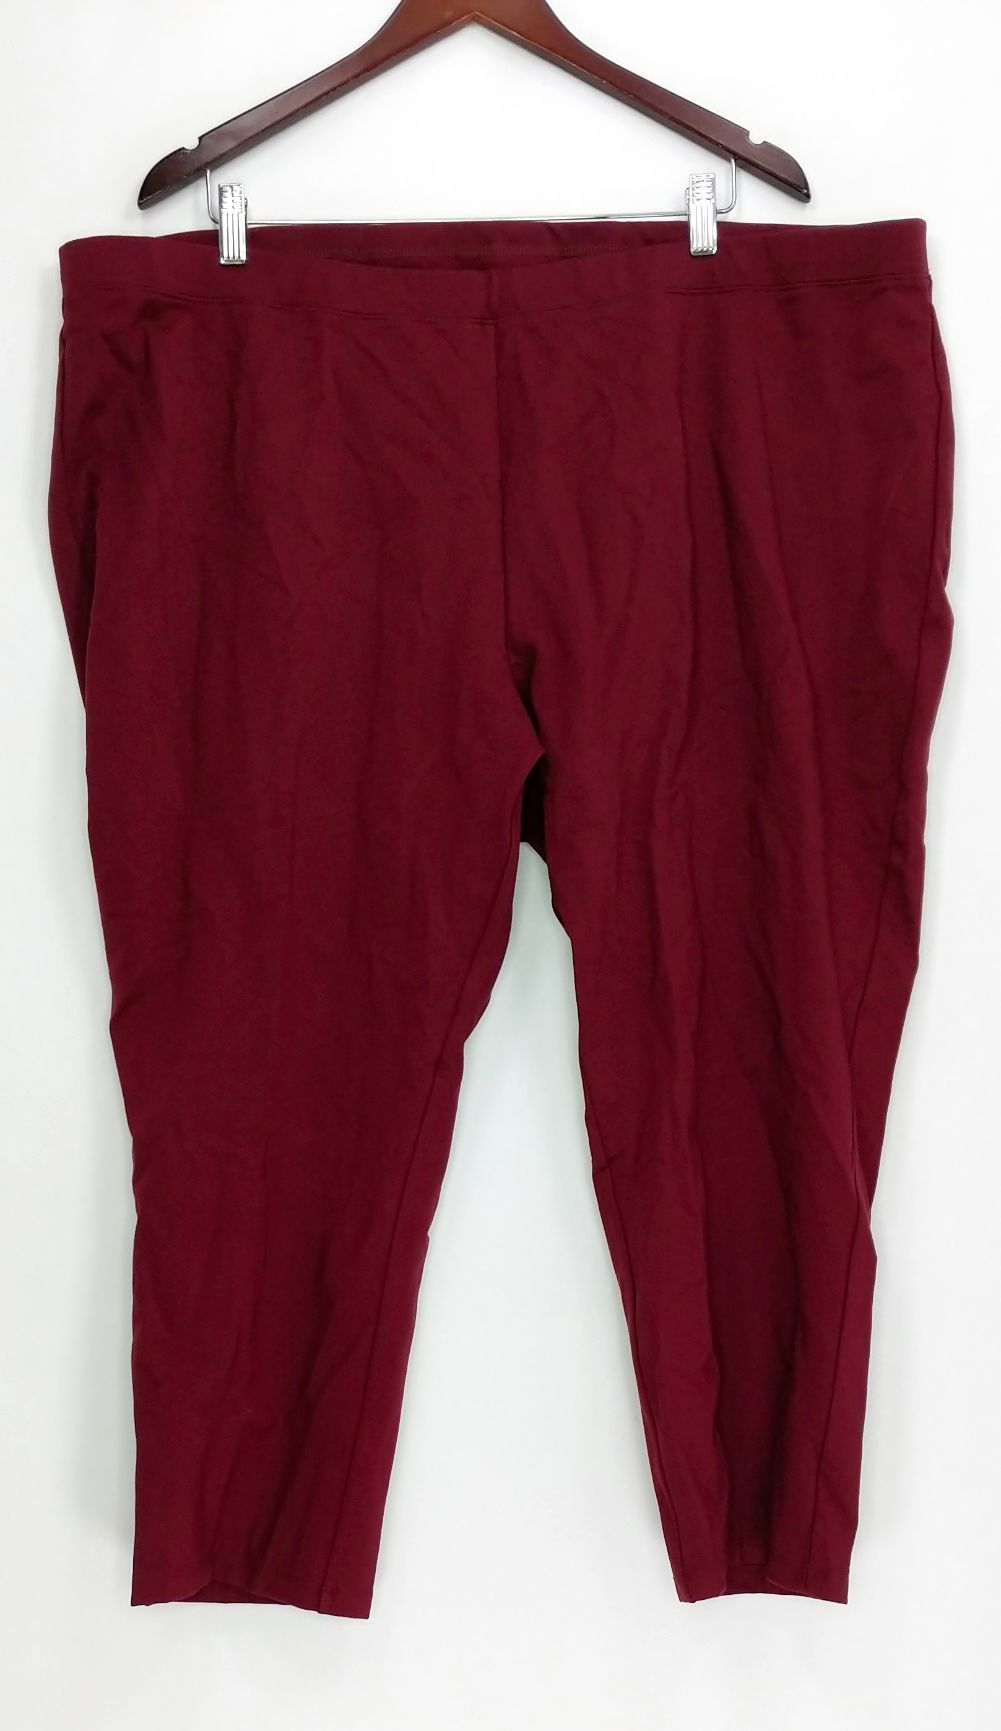 d723e15ec7ab H by Halston Women's Petite Pants 26WP Pull On Ponte Knit Red A294253